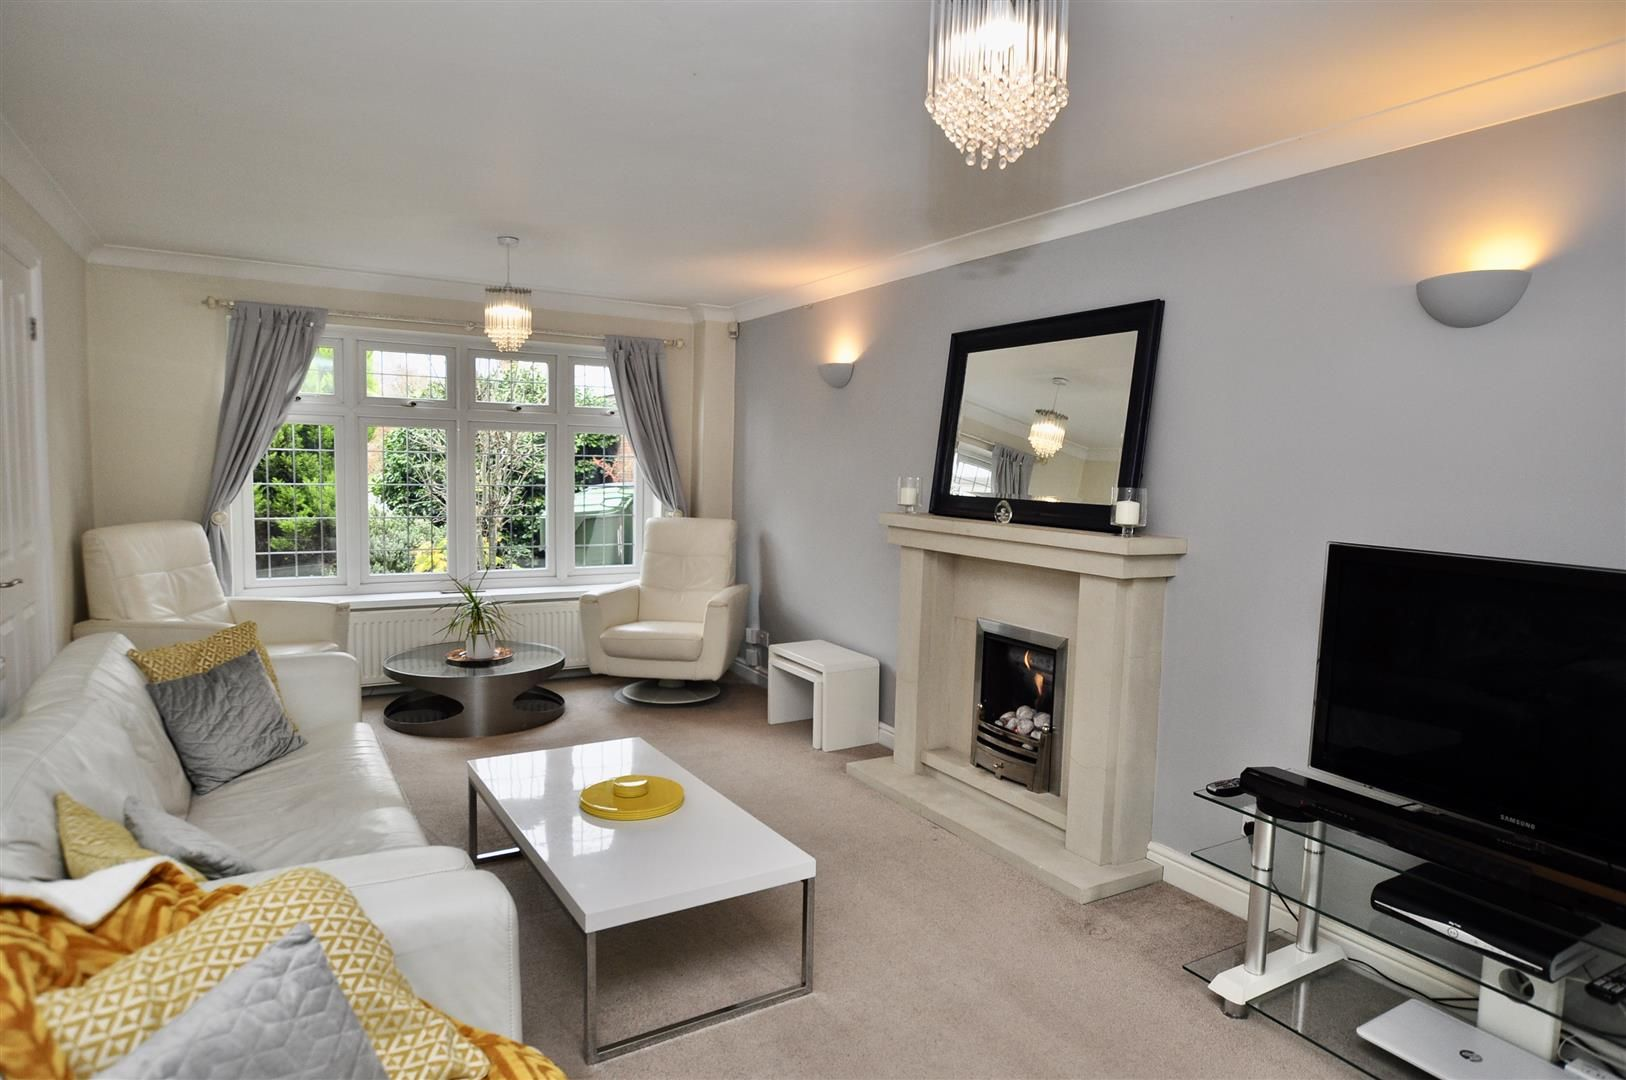 4 bed house for sale in Hagley  - Property Image 13